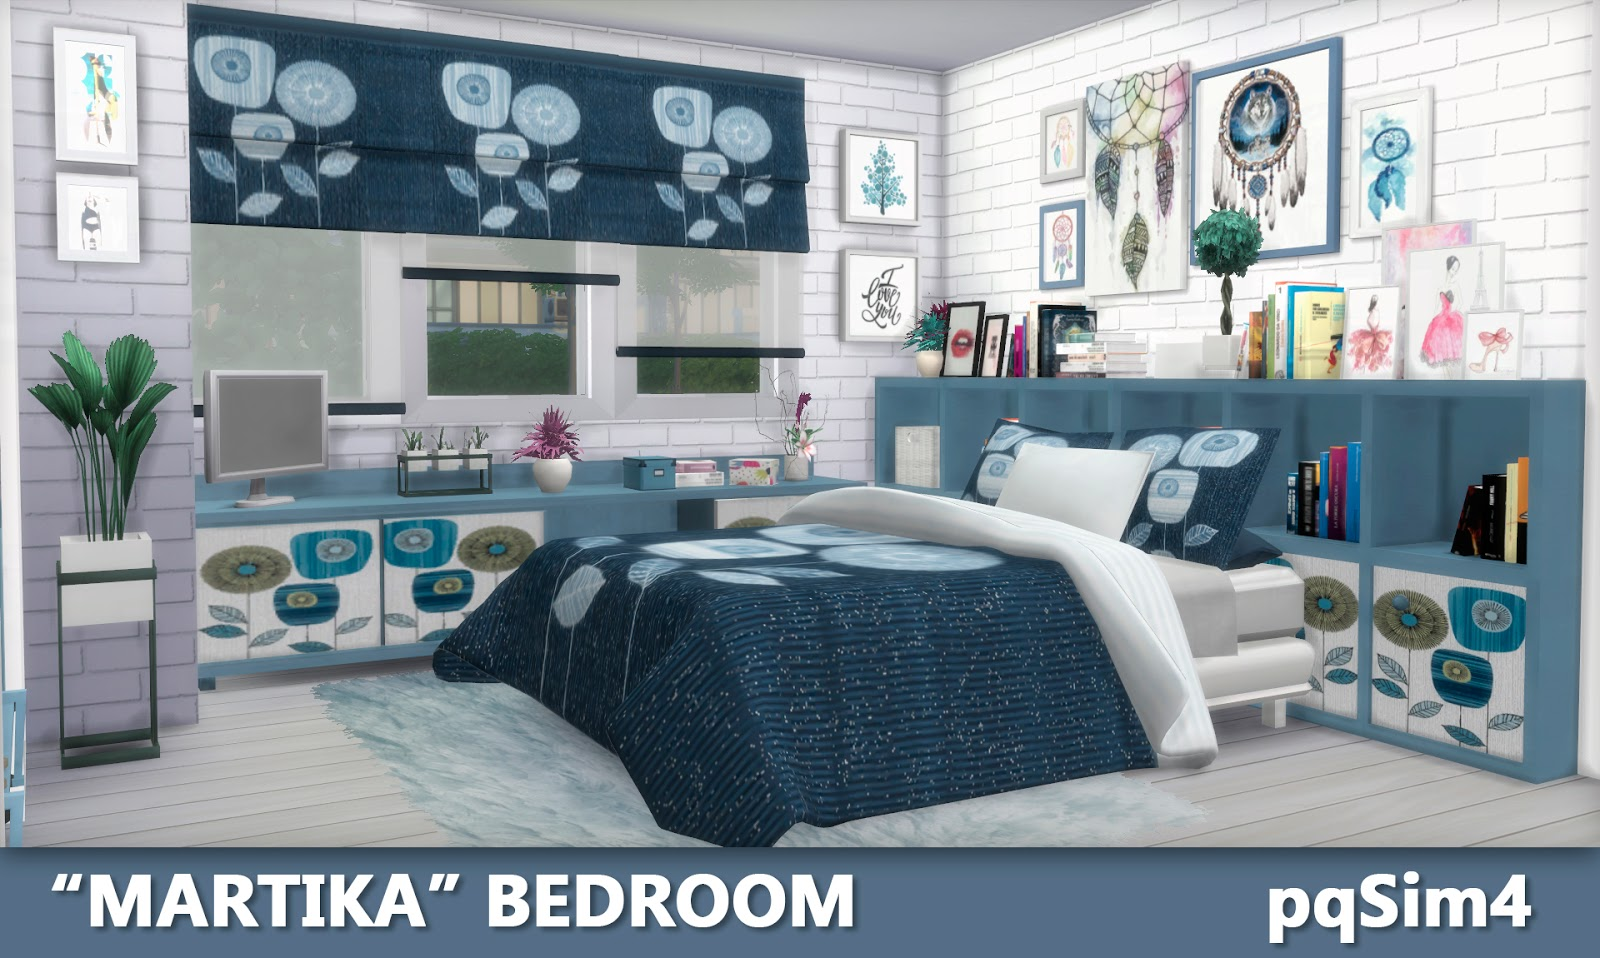 Martika bedroom sims 4 custom content for 4 bedroom